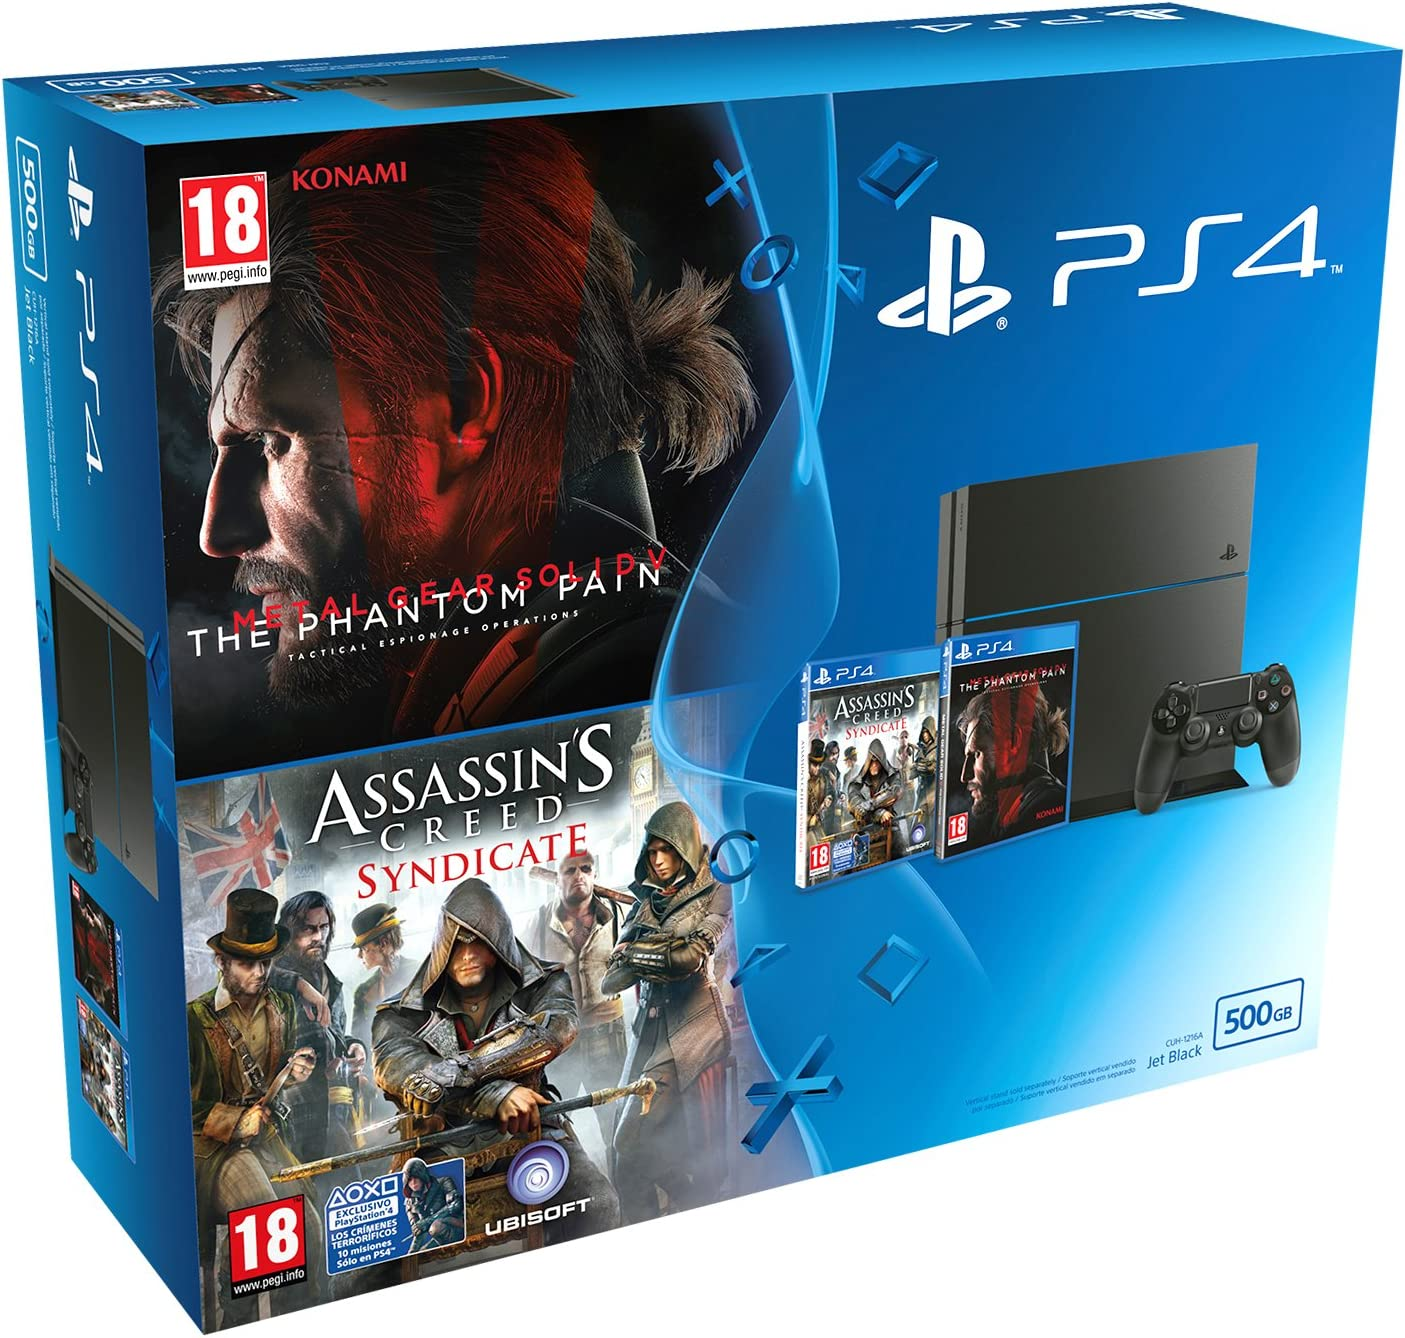 PlayStation 4 (PS4) - Consola 500 GB + Metal Gear Solid V: The Phantom Pain + Assassins Creed: Syndicate: Amazon.es: Videojuegos